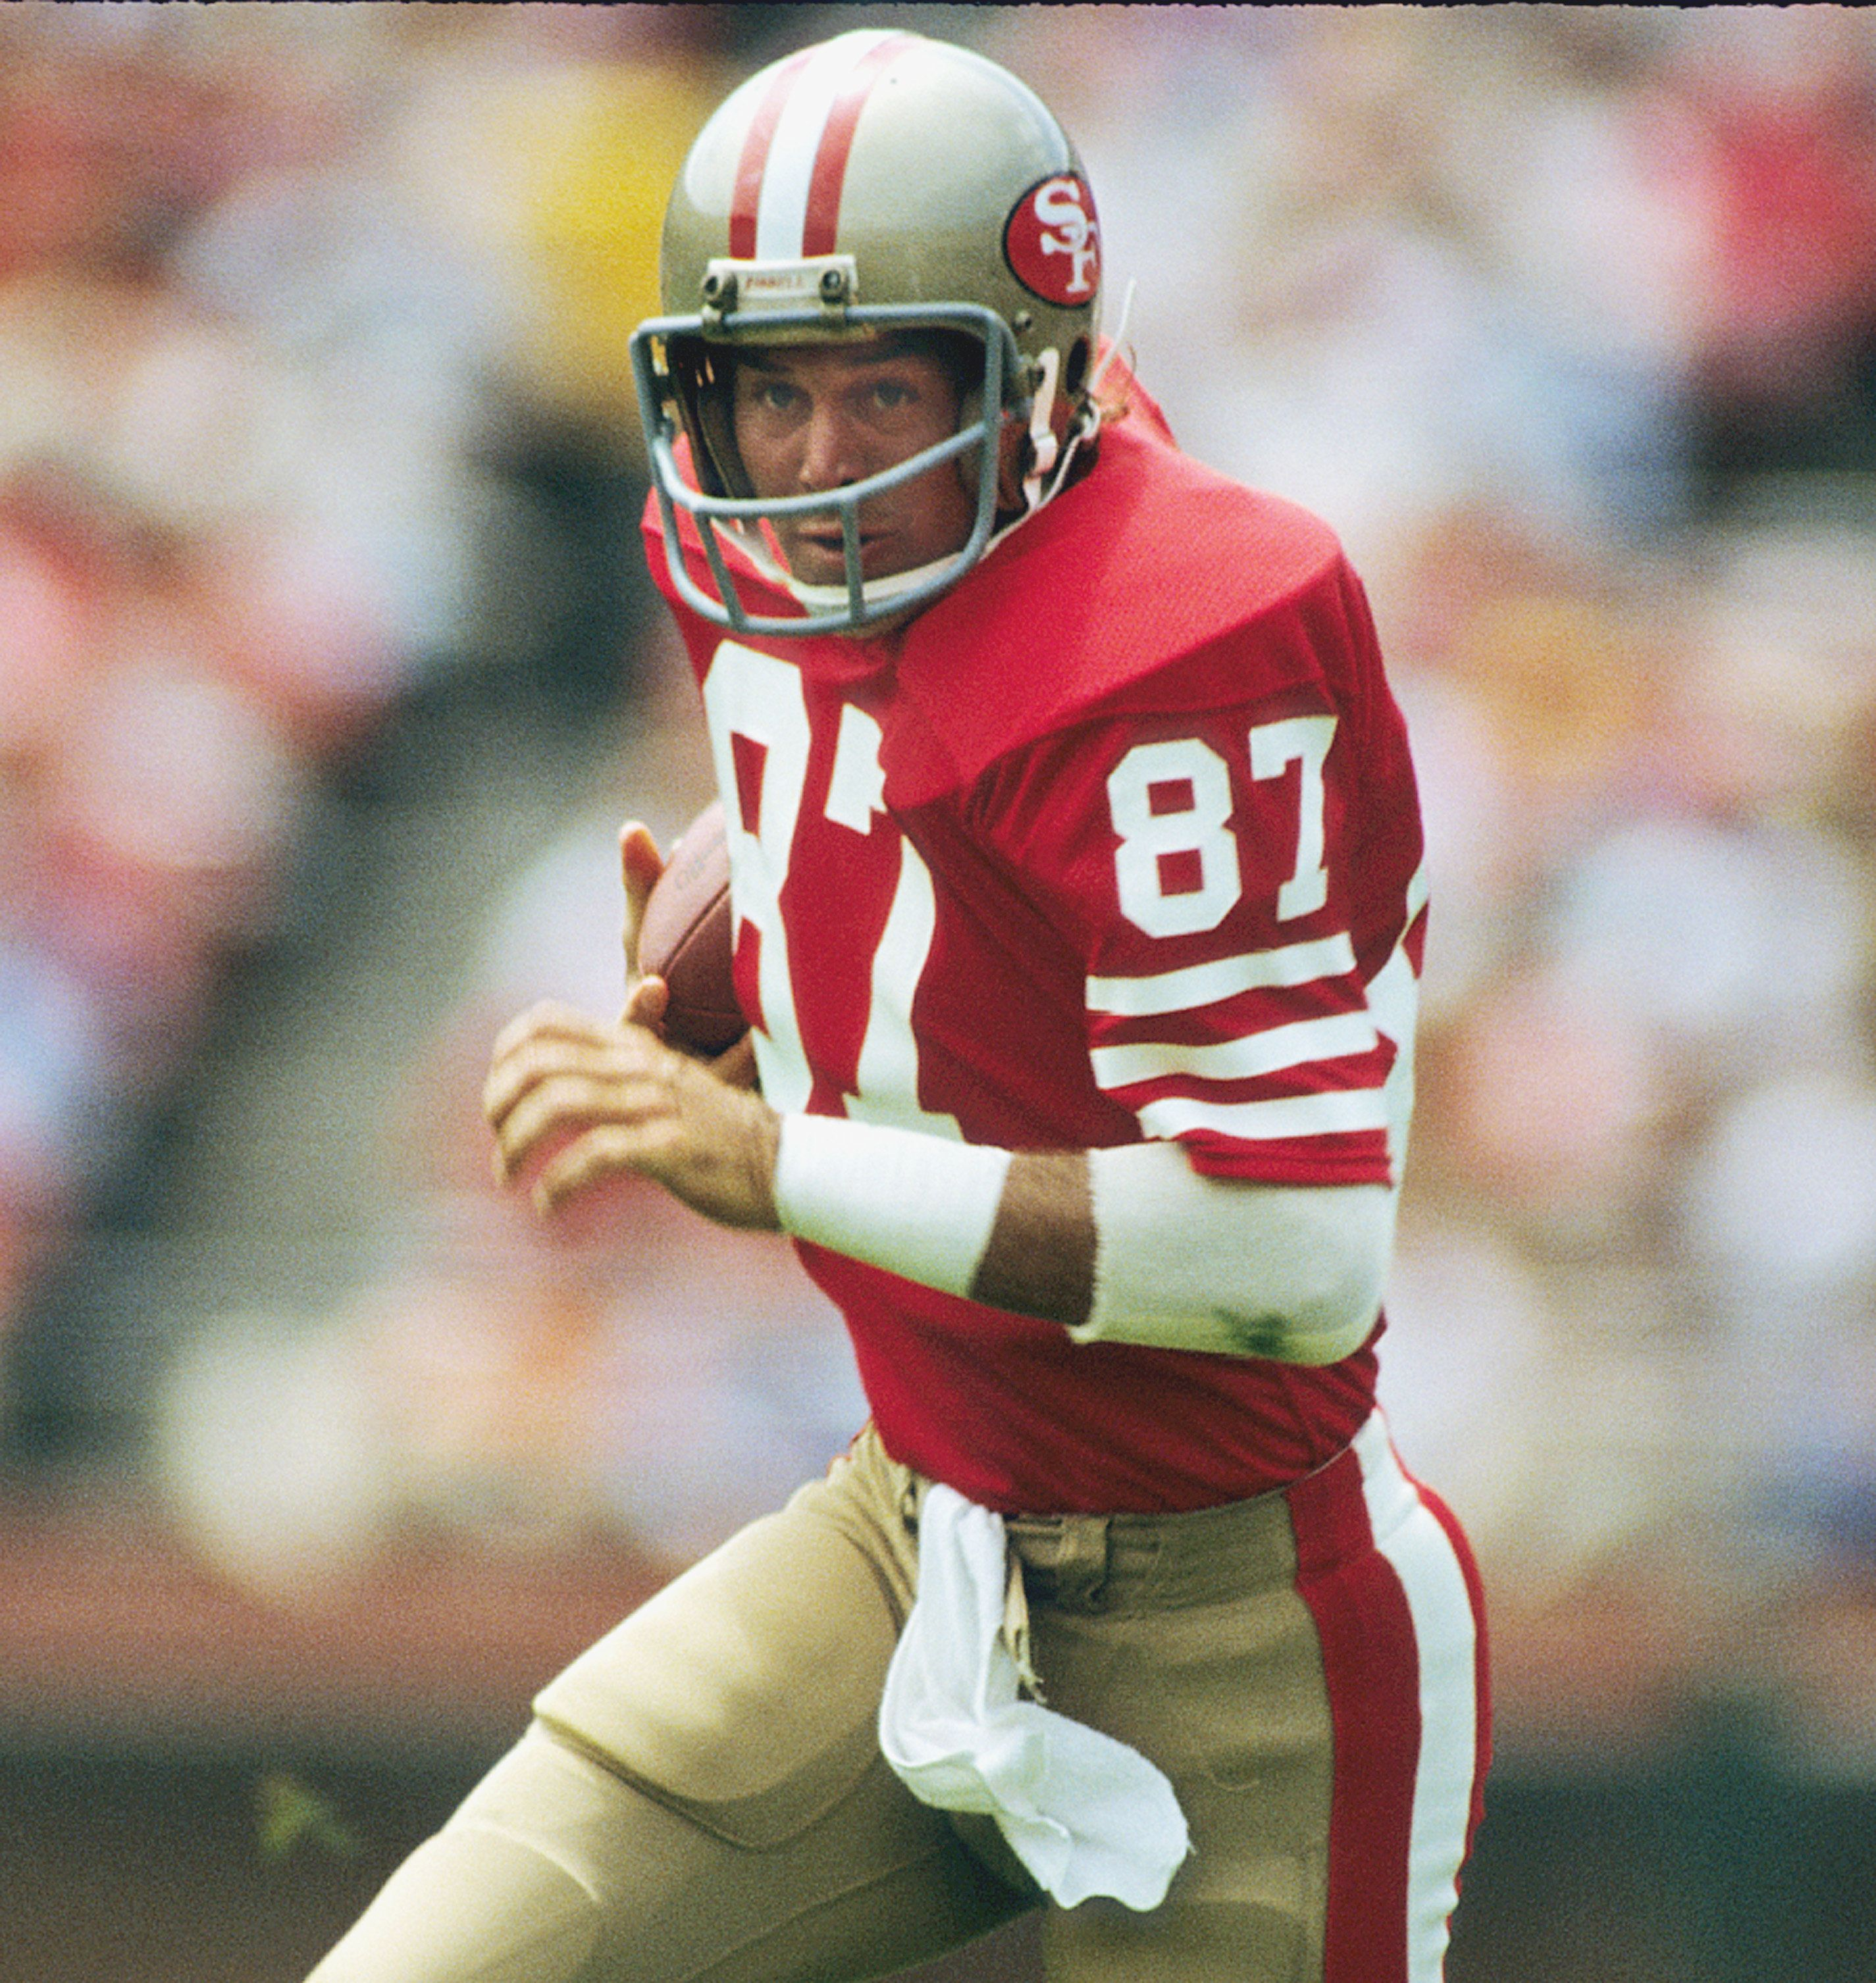 SAN FRANCISCO, CA - SEPTEMBER 12:  Dwight Clark #87 after catching a pass against the Los Angeles Raiders on September 12, 1982 in San Francisco, California.  (Photo by Ronald C. Modra/  Getty Images)